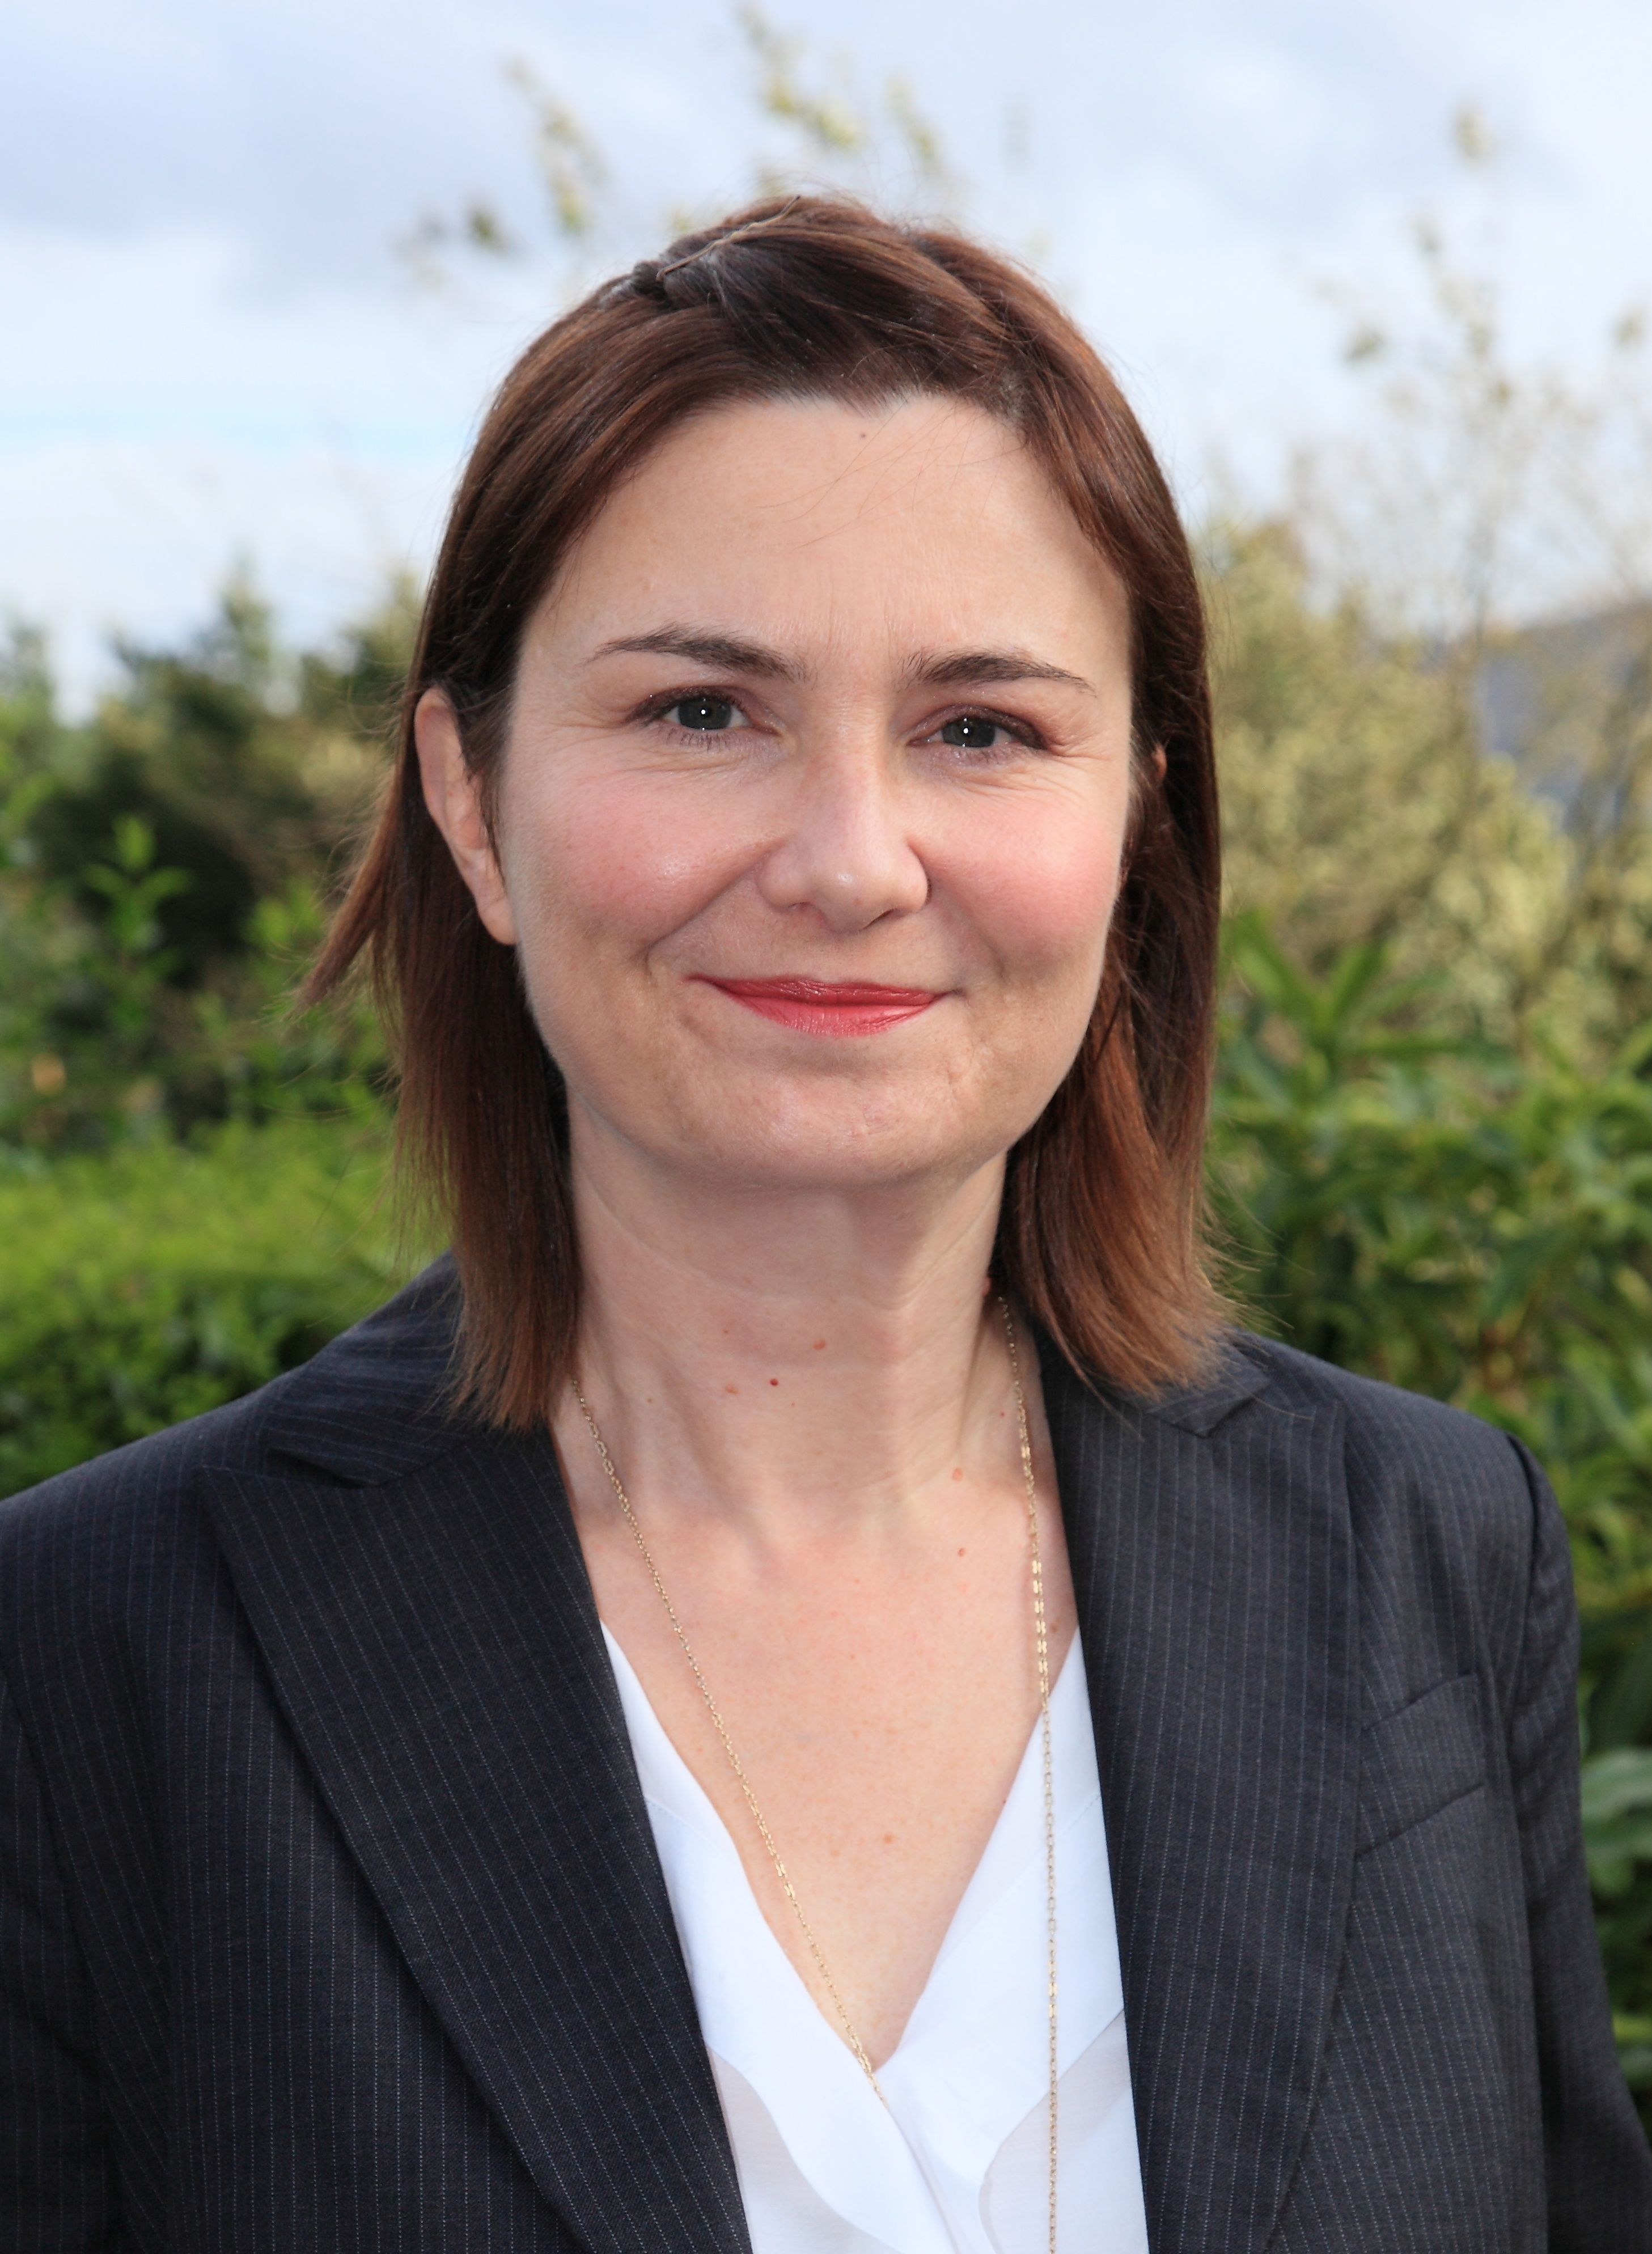 Fiona Sutherland – co-founder and co-owner of MSA Law